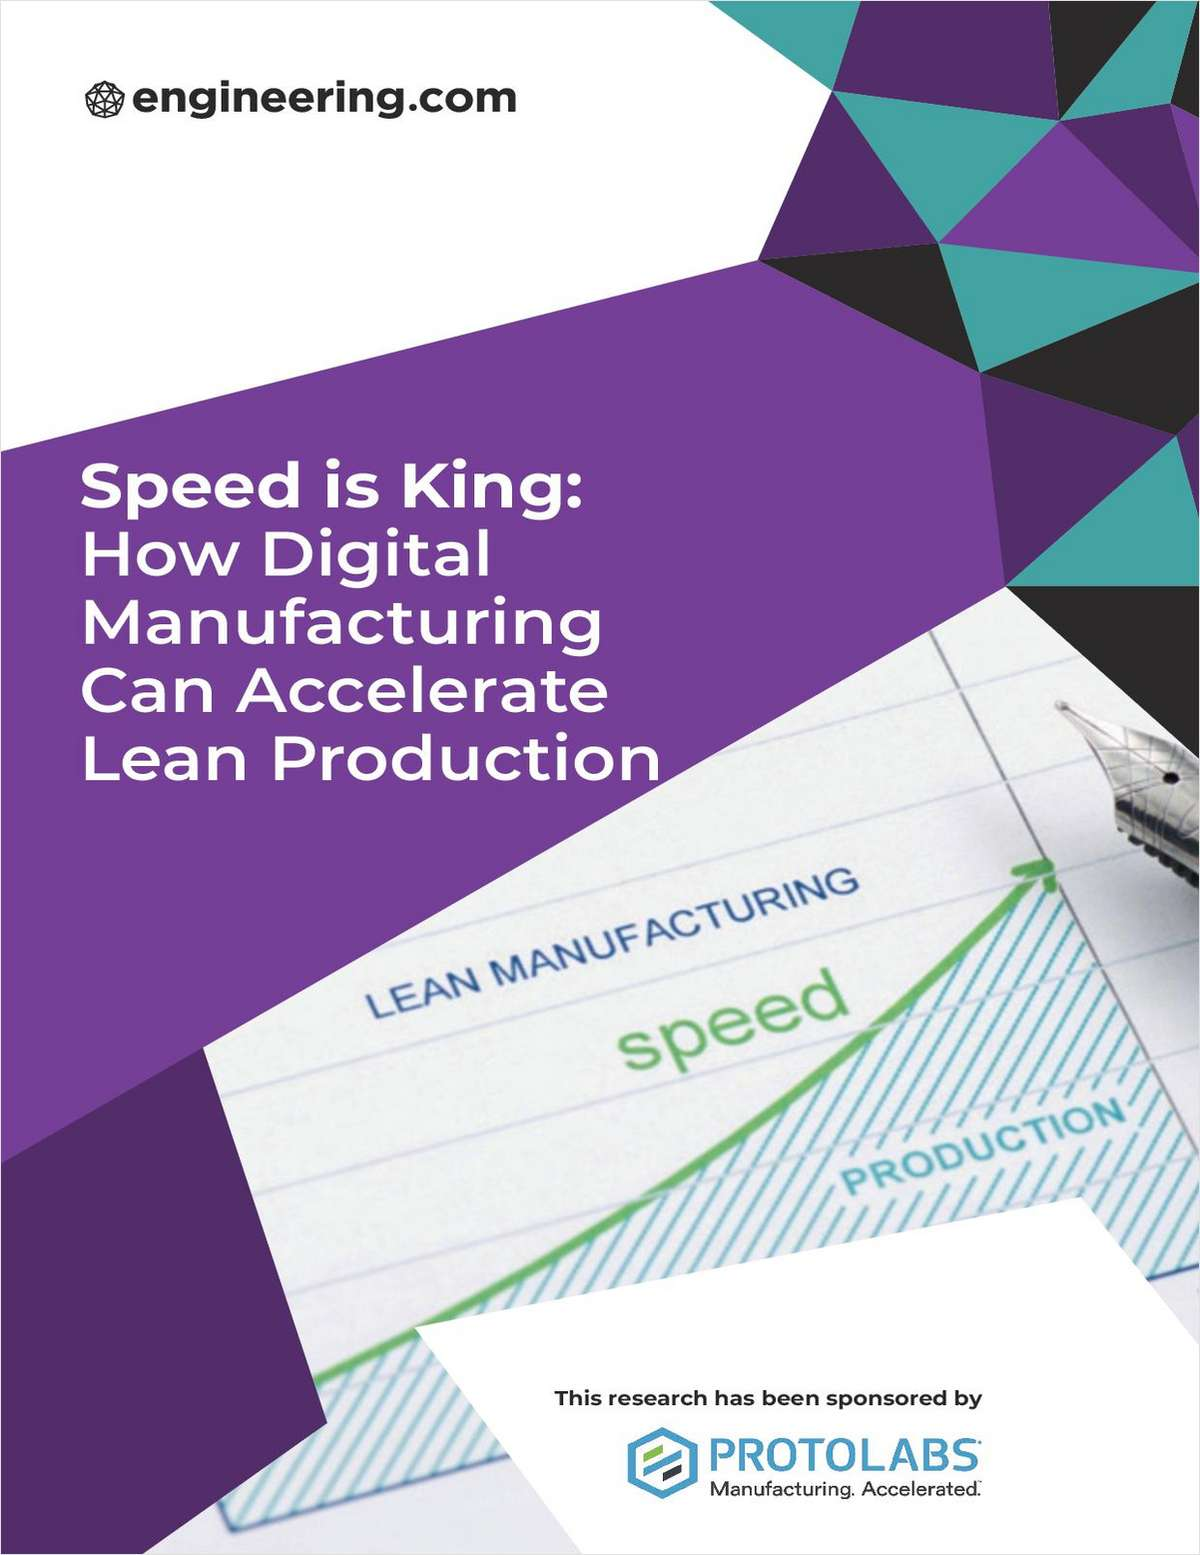 Speed is King: How Digital Manufacturing Can Accelerate Lean Production